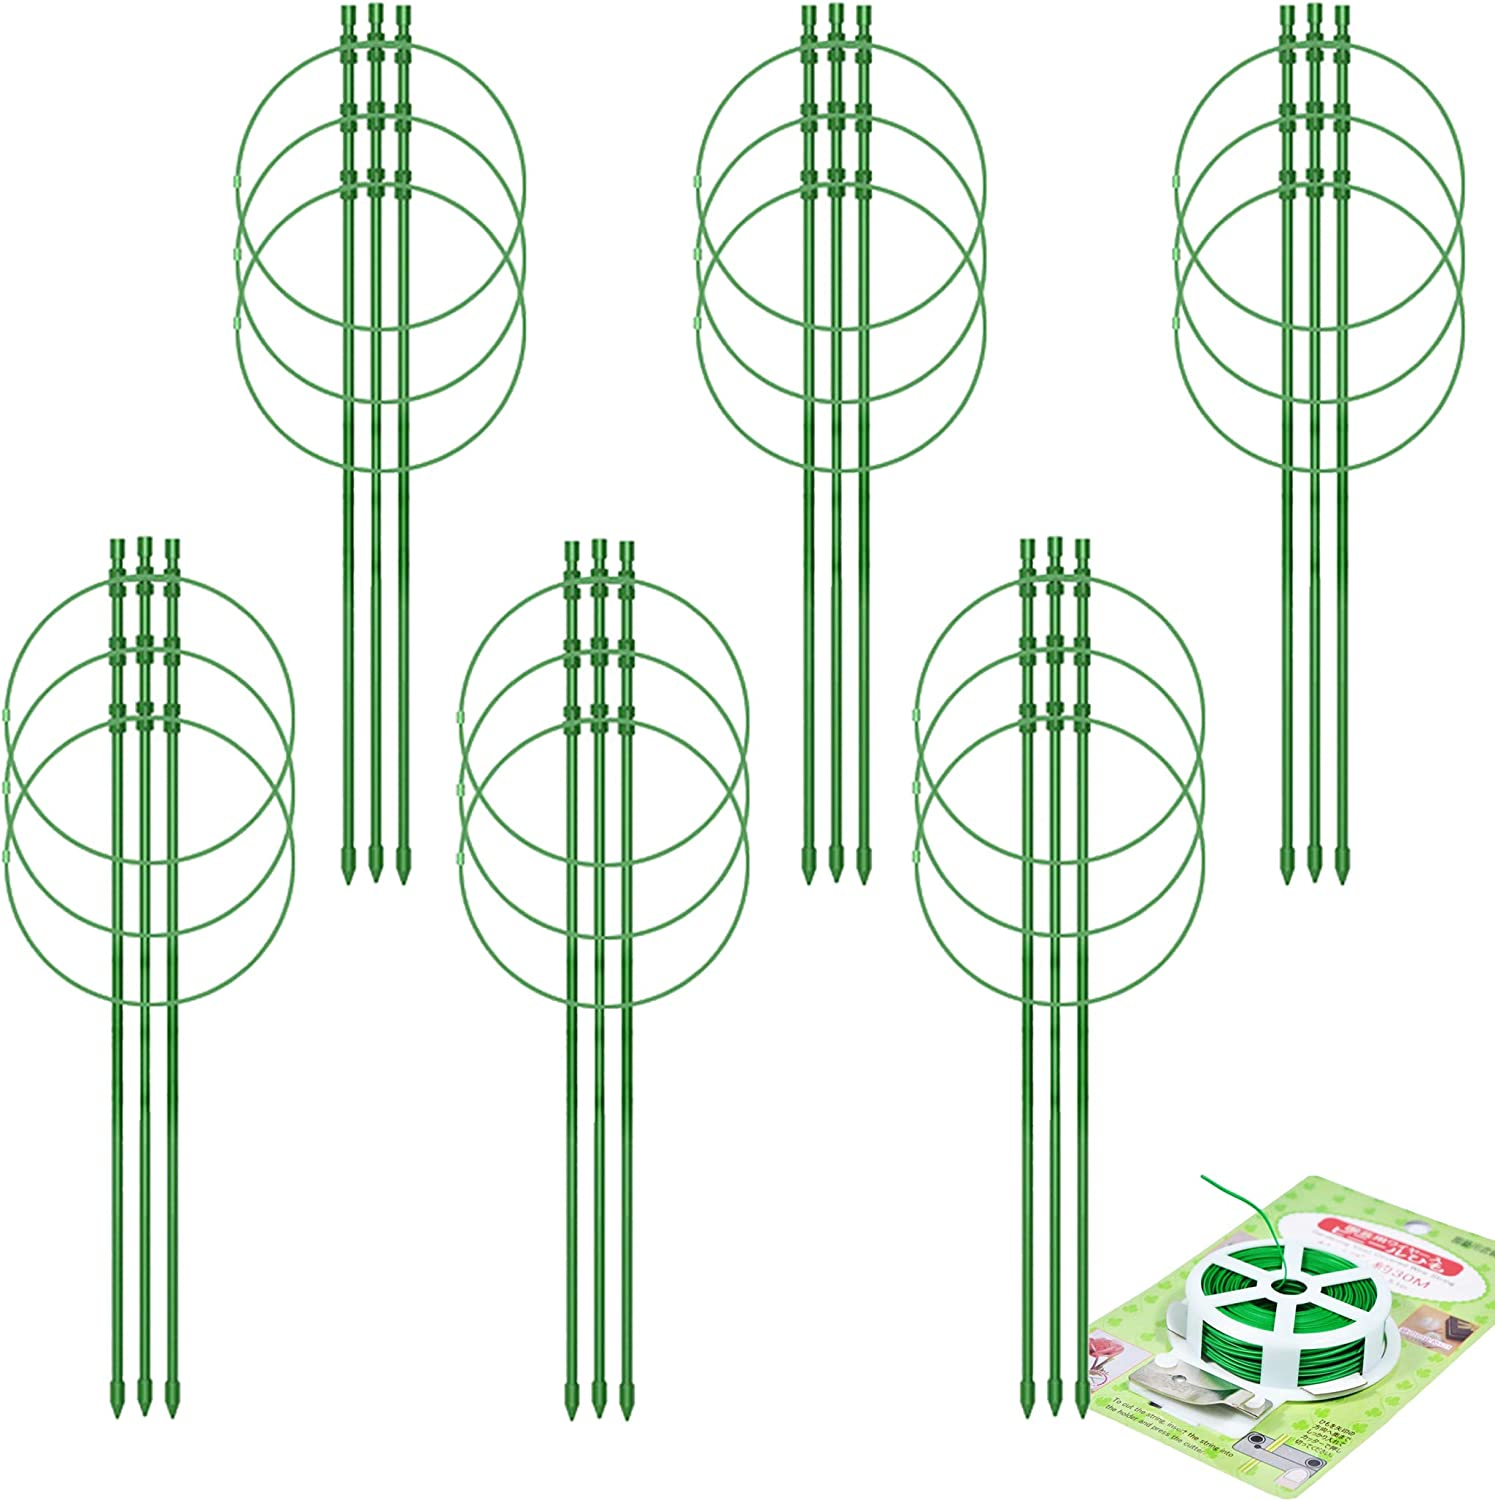 Olgaa 6pcs Garden Plant Support Tomato Cage for Climbing Plants, Outdoors Trellis Flower Support Climbing Vegetables & Flowers Grow Cage with 20 Meters Rope